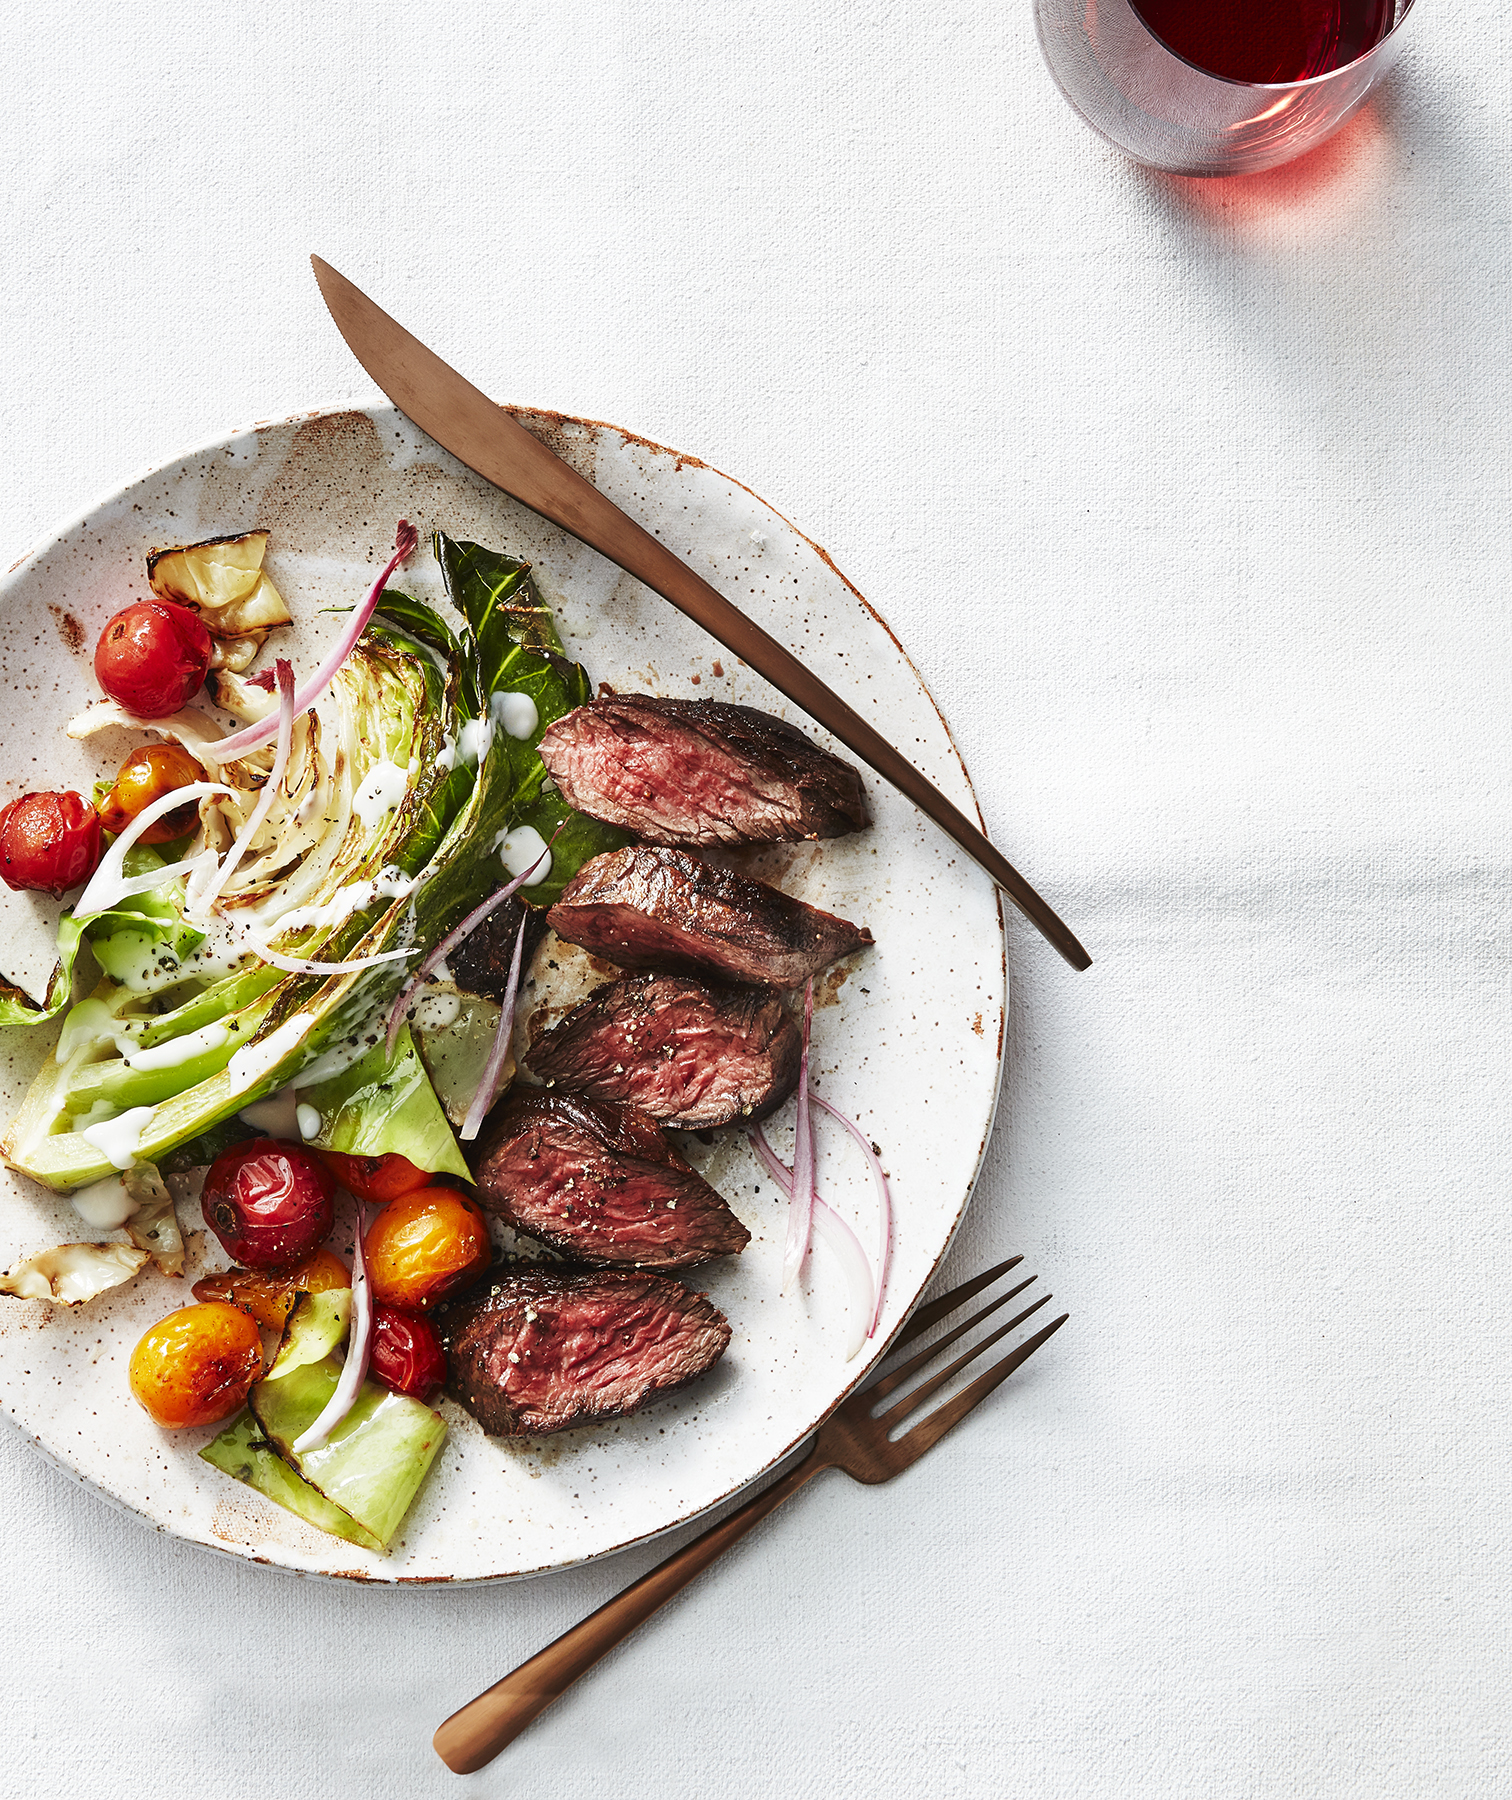 Seared Hanger Steak and Warm Cabbage Wedges